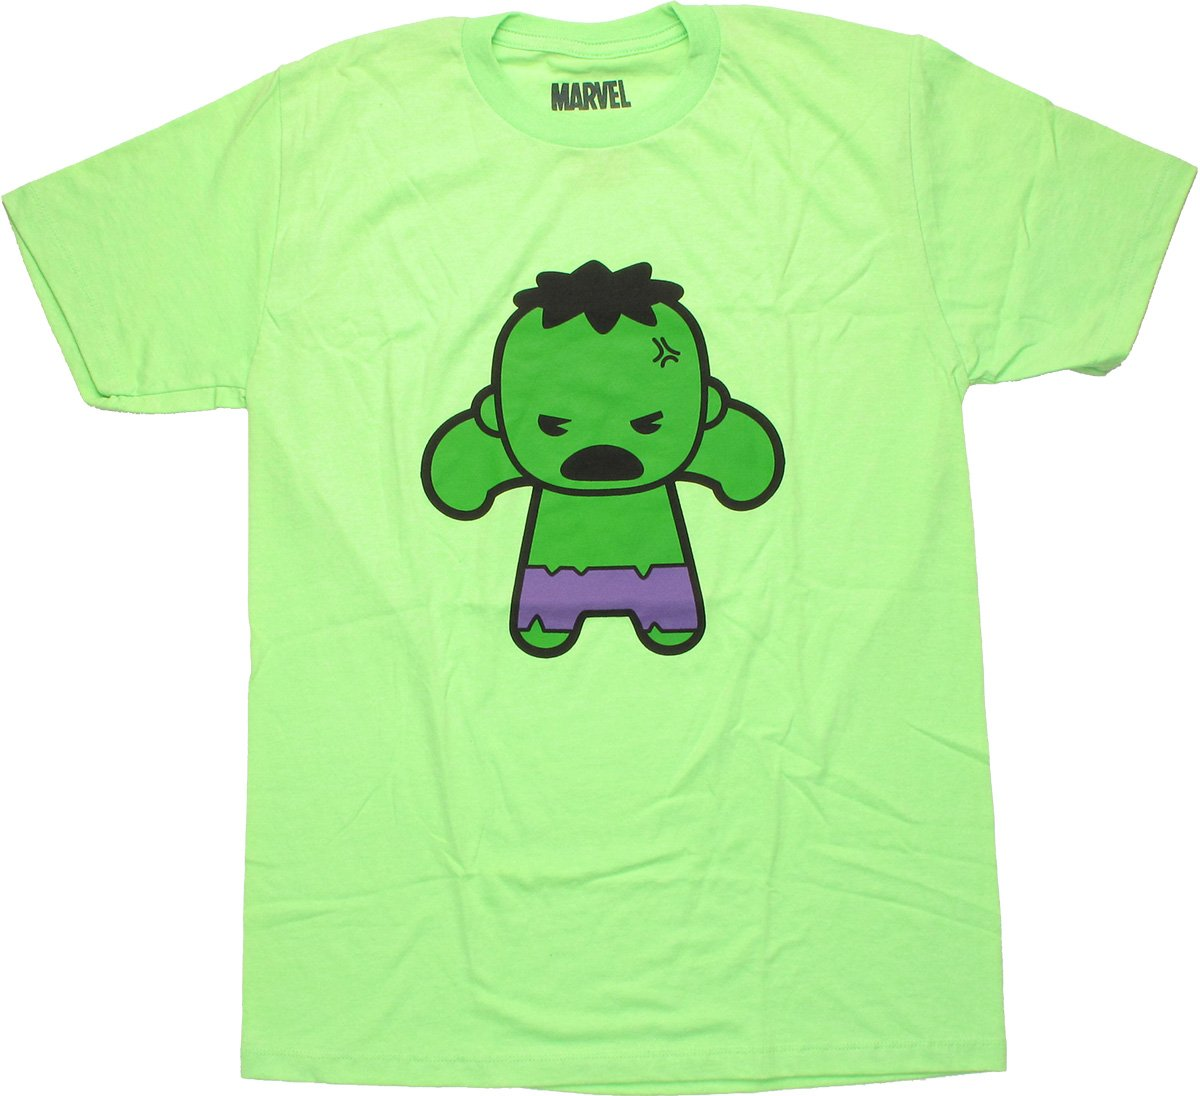 Shop for baby hulk shirt online at Target. Free shipping on purchases over $35 and save 5% every day with your Target REDcard.